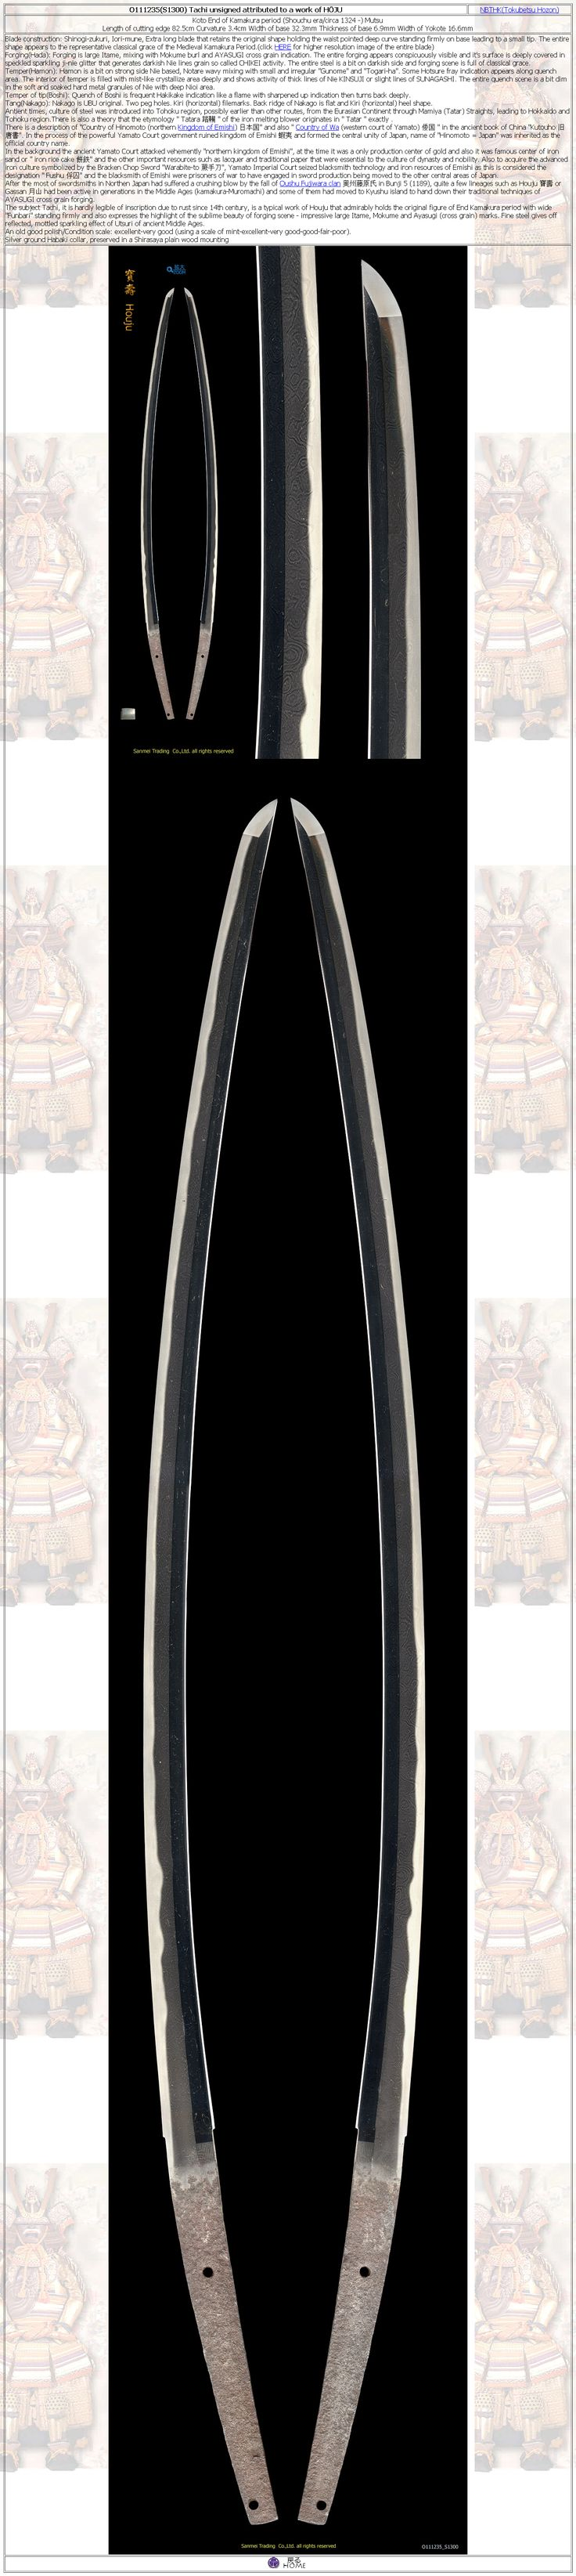 Tachi unsigned attributed to a work of HŌJU.	NBTHK(Tokubetsu Hozon) Koto End of Kamakura period (Shouchu era/circa 1324 -) Mutsu Length of cutting edge 82.5cm Curvature 3.4cm Width of base 32.3mm Thickness of base 6.9mm Width of Yokote 16.6mm